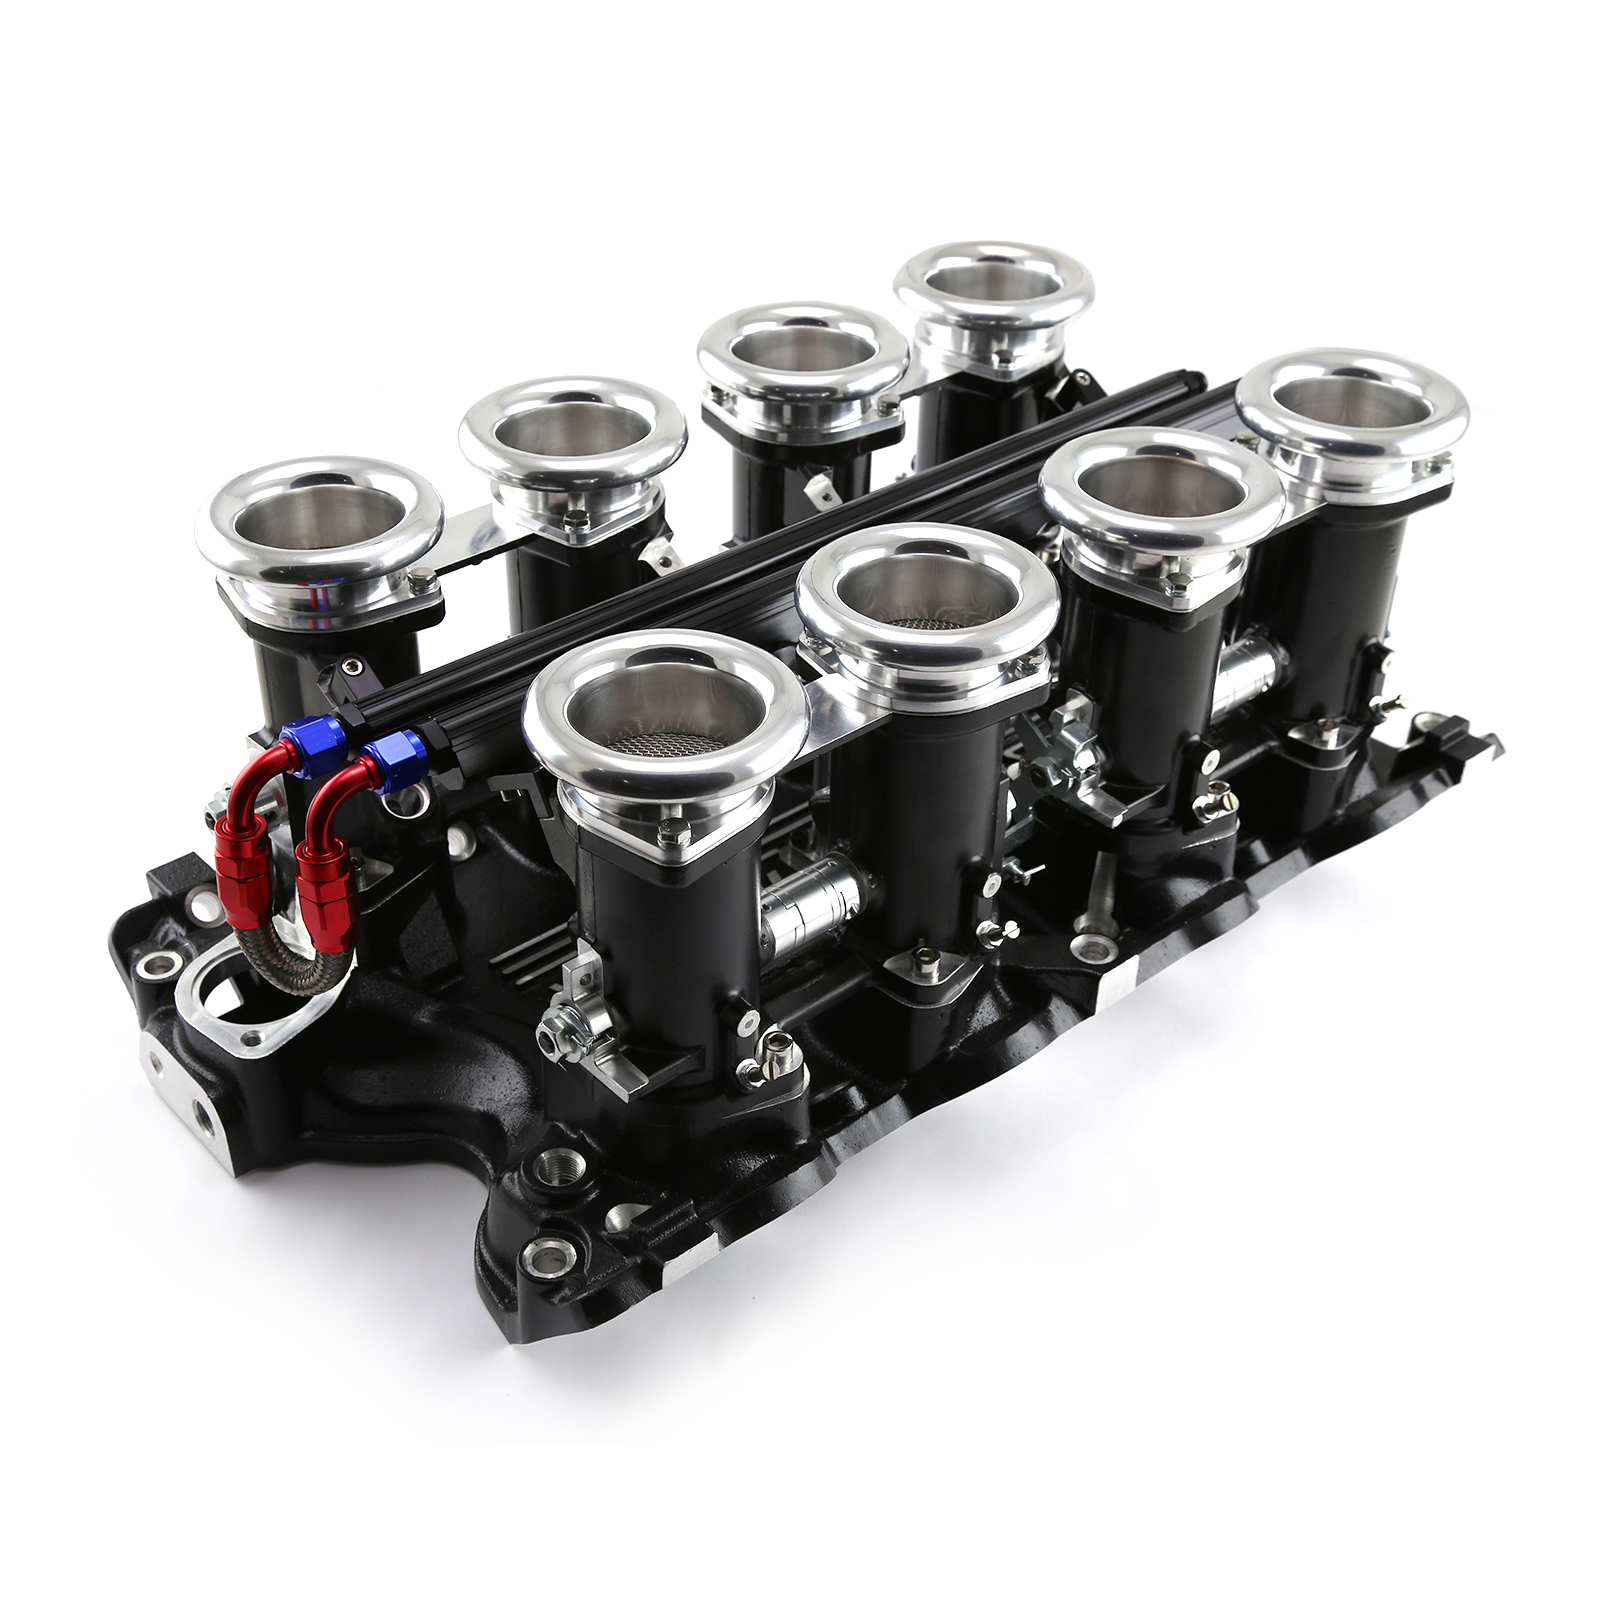 Ford BB 460 Downdraft EFI Stack Intake Manifold System Complete Black